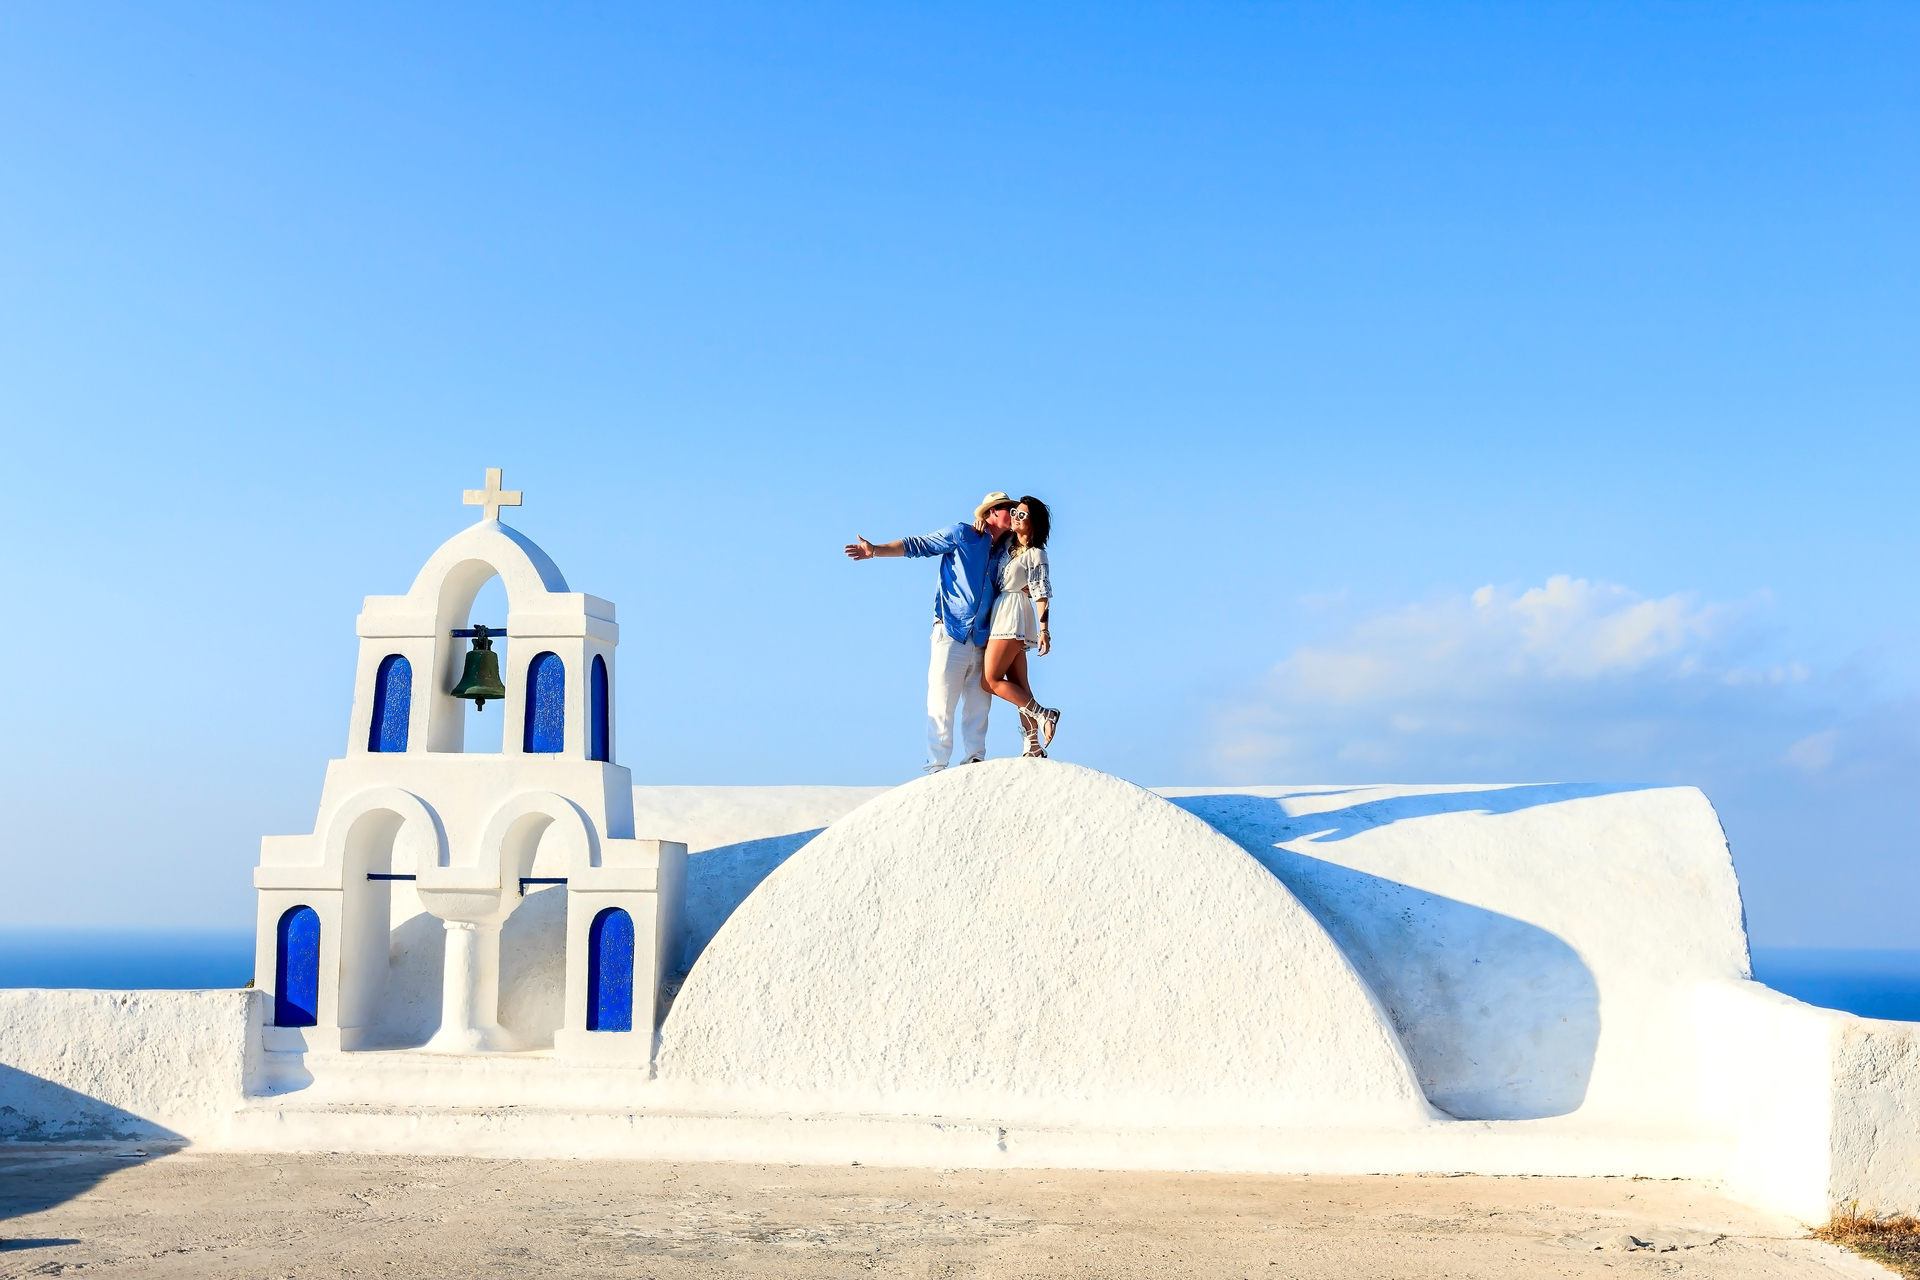 Couple enjoying city. Couple enjoying posing on chapel with beautiful blue sky on background in Santorini, Greece